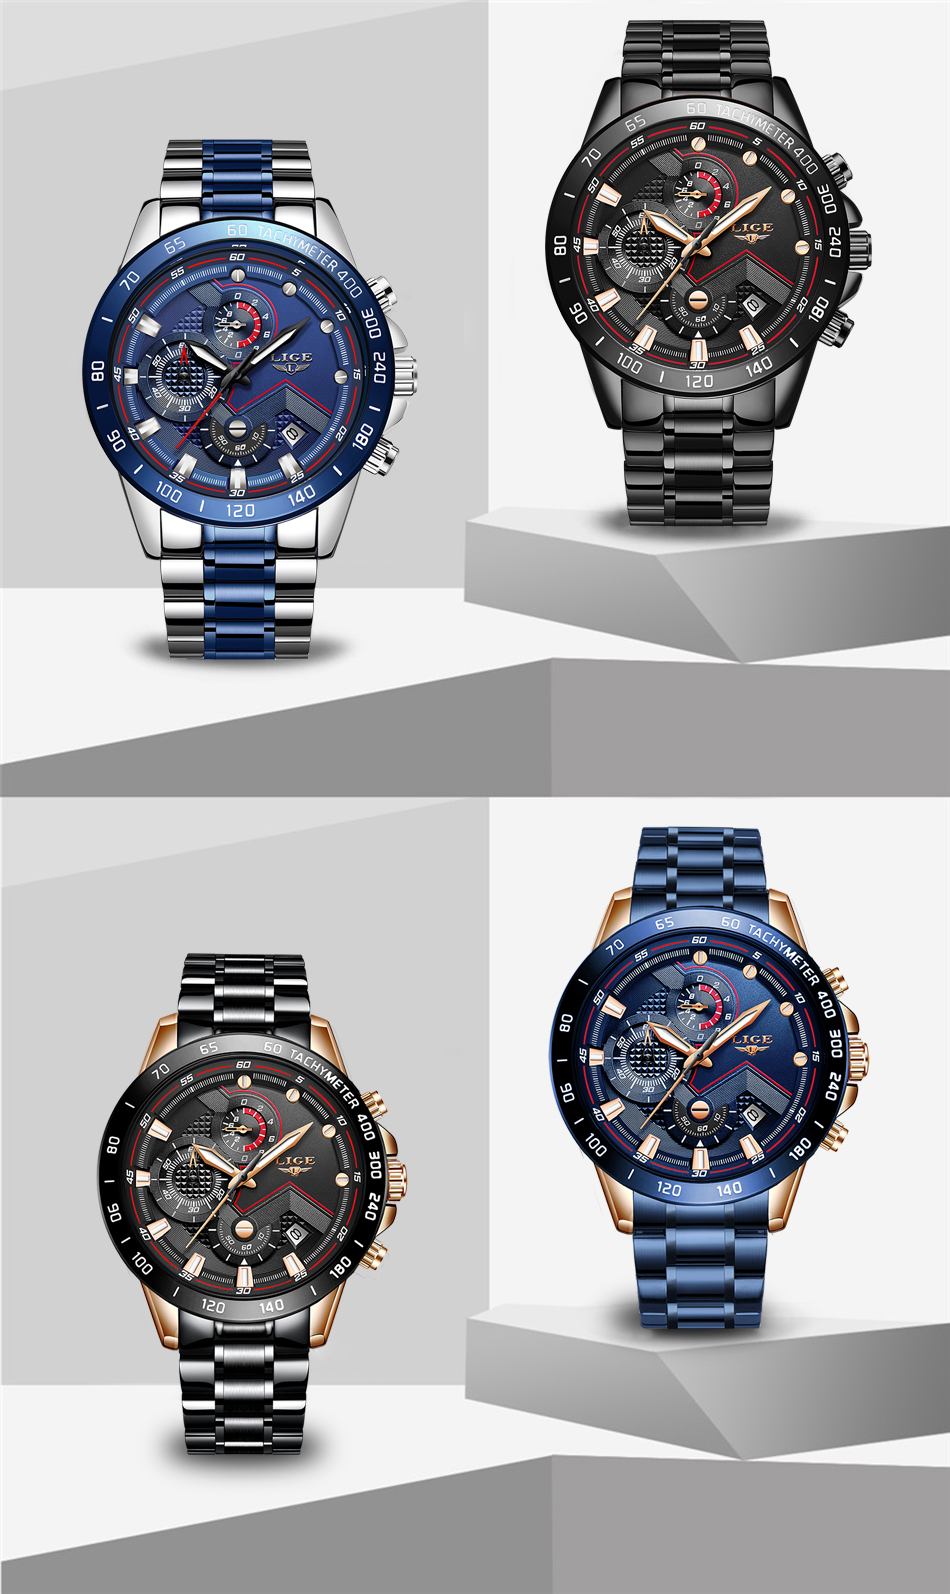 H9b459b1cf820495d84c3e48d240b2c8cA Relogio Masculino LIGE Hot Fashion Mens Watches Top Brand Luxury Wrist Watch Quartz Clock Blue Watch Men Waterproof Chronograph